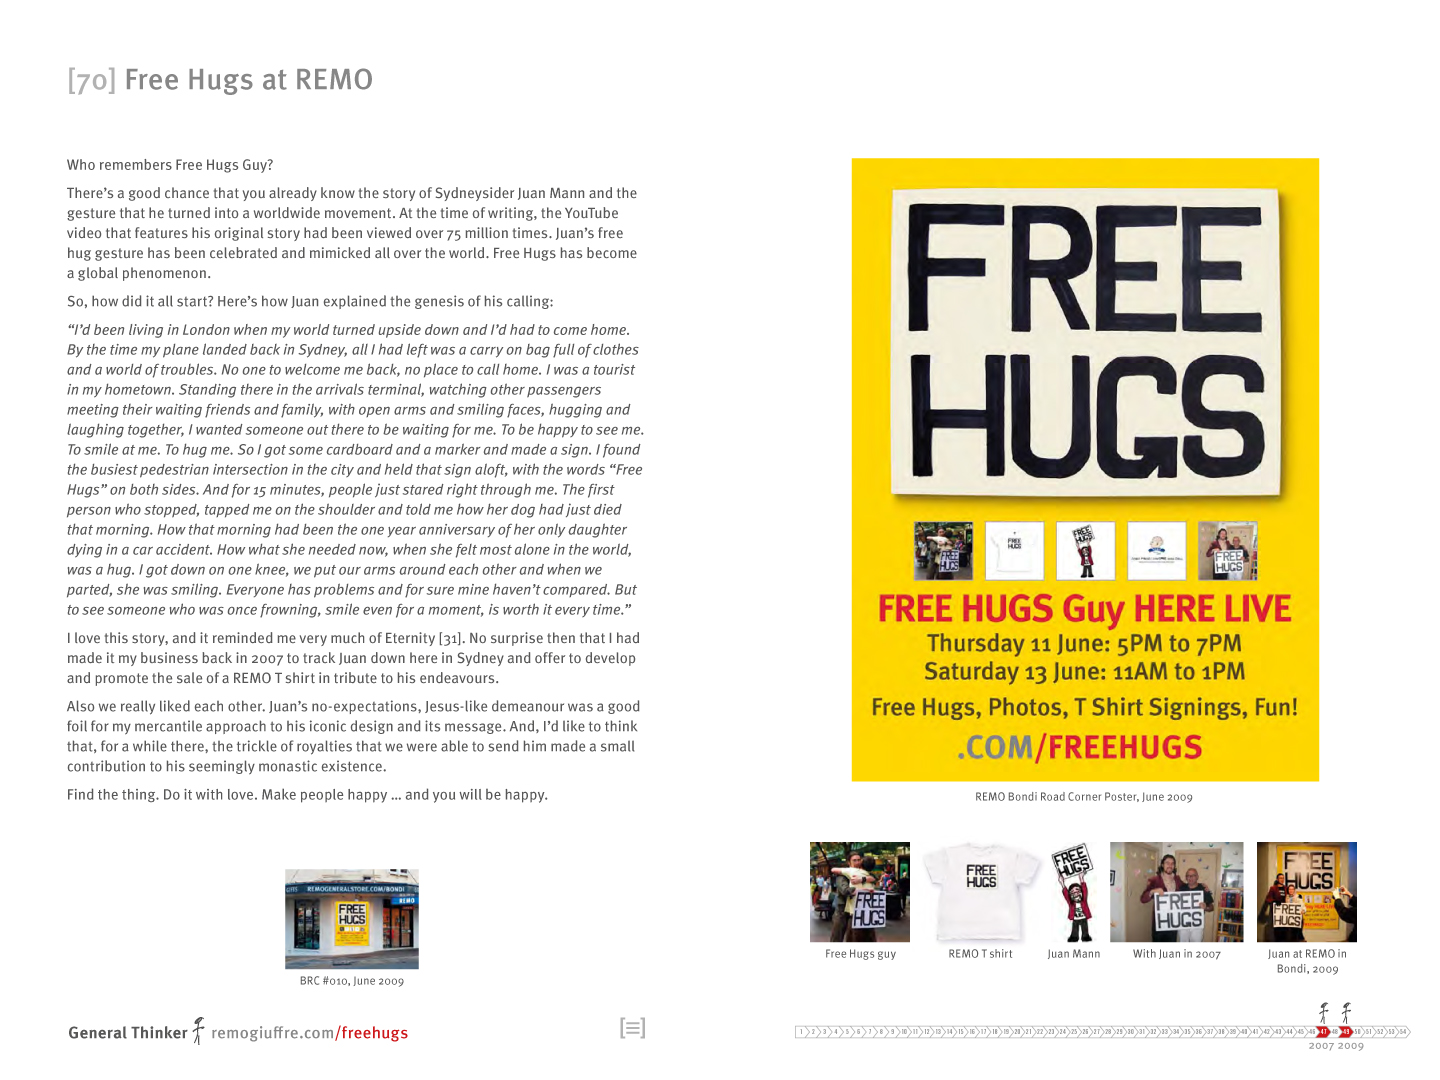 GeneralThinker_Book_FreeHugs.jpg